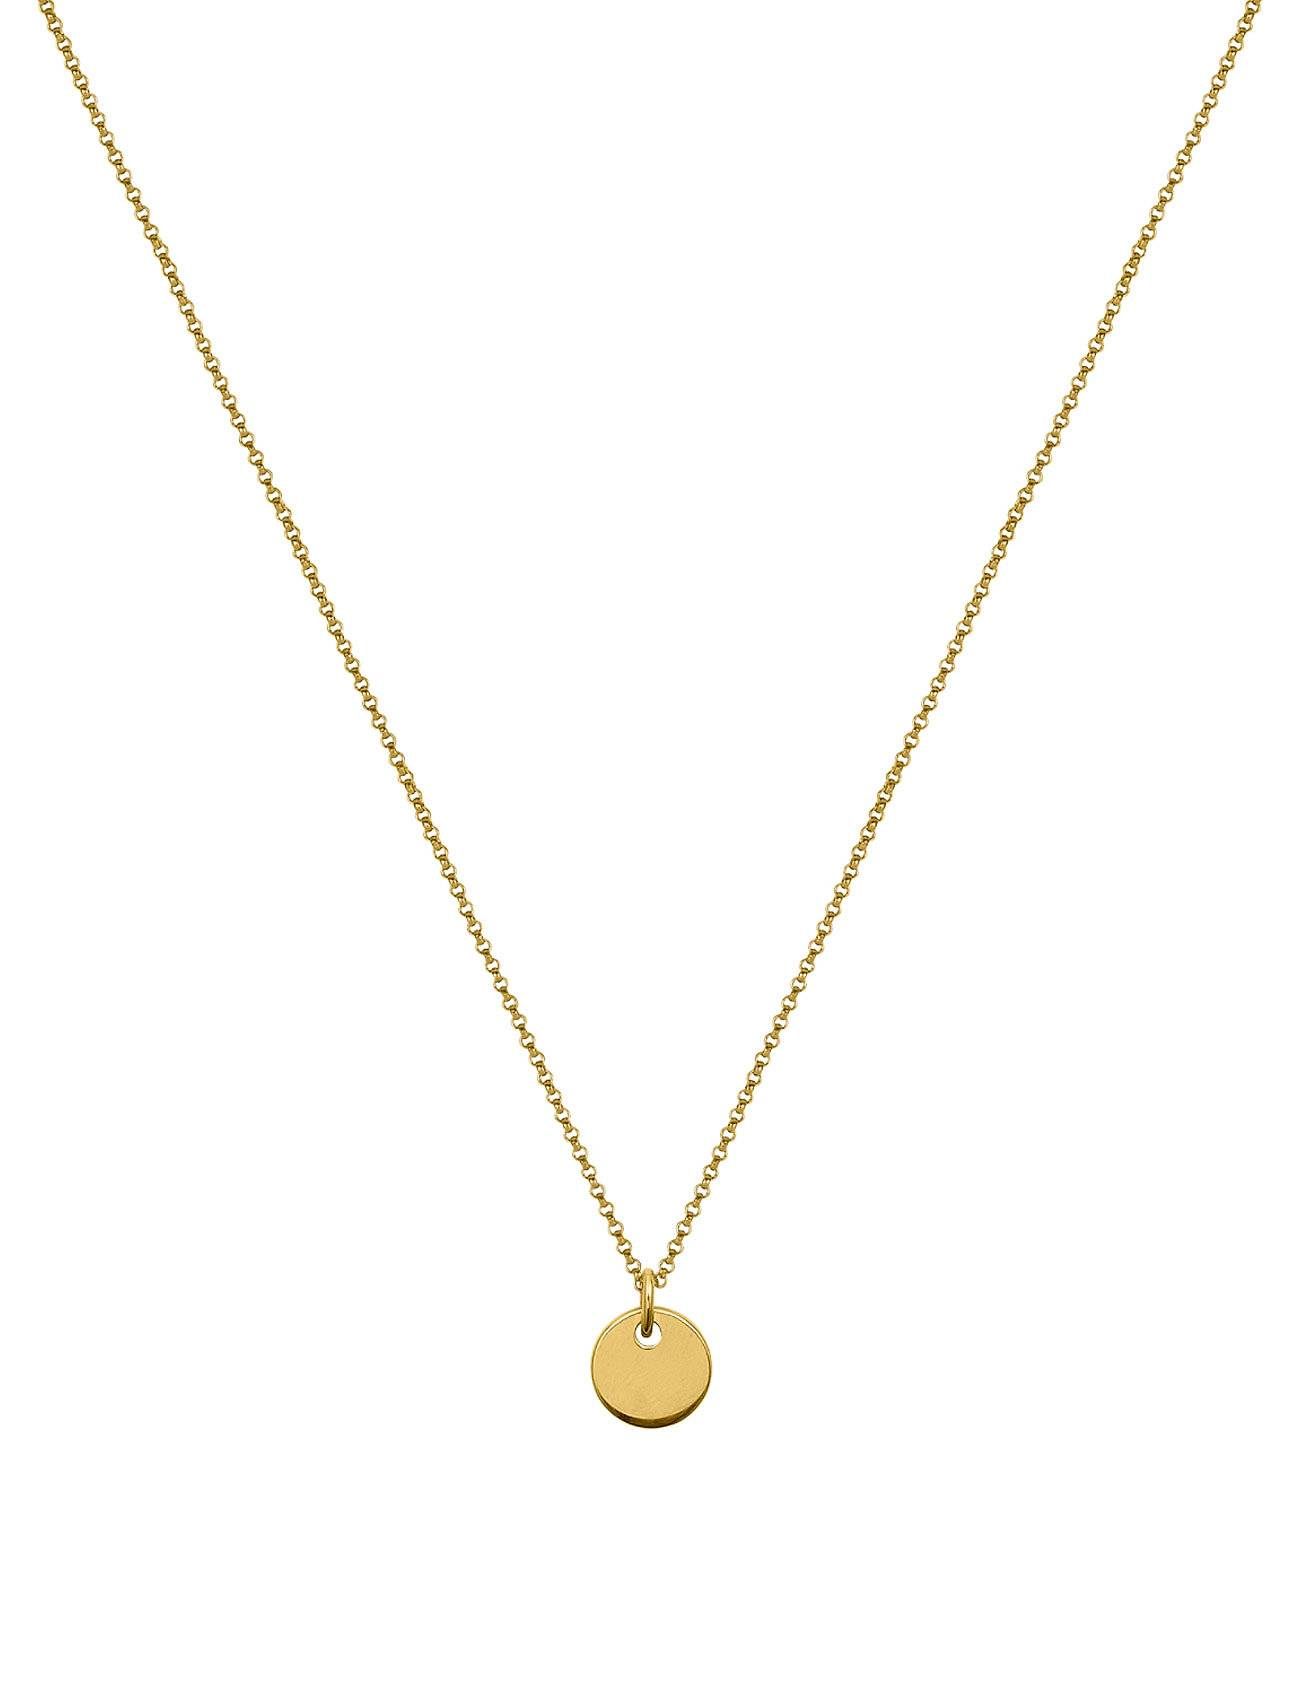 SOPHIE by SOPHIE Plate Necklace